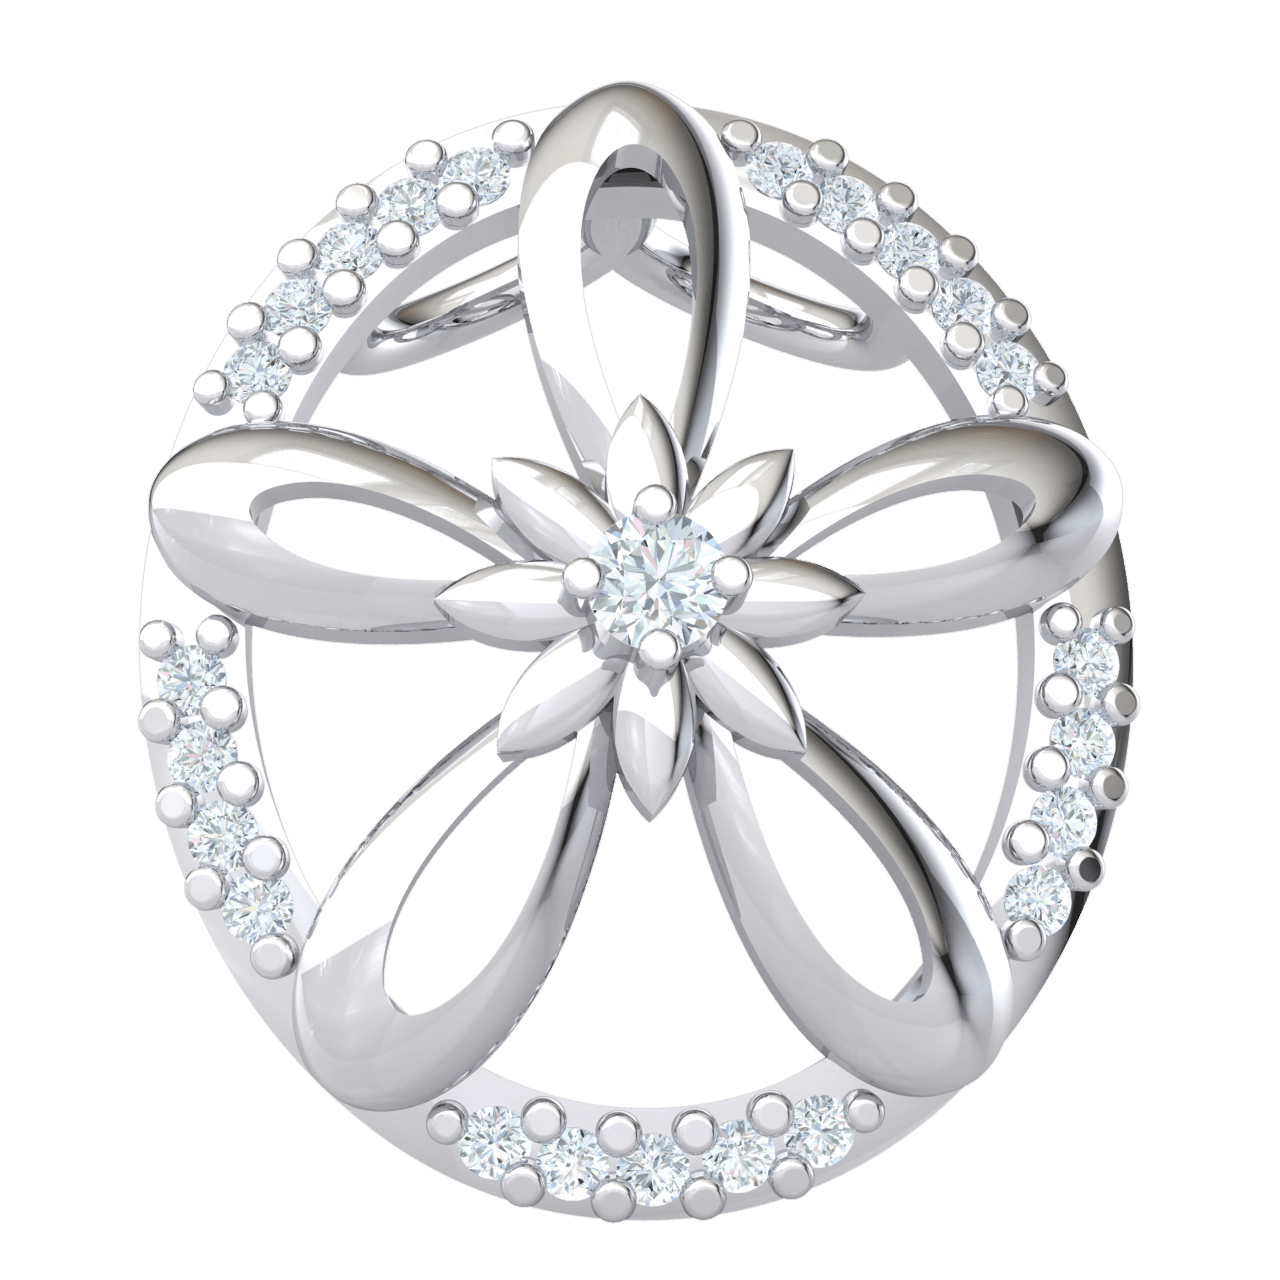 0.11 Ct JK I1 Beautiful Pendant Arrangement Of Real Flowers Inside A Sparkling White Diamond Oval in 10 kt Gold